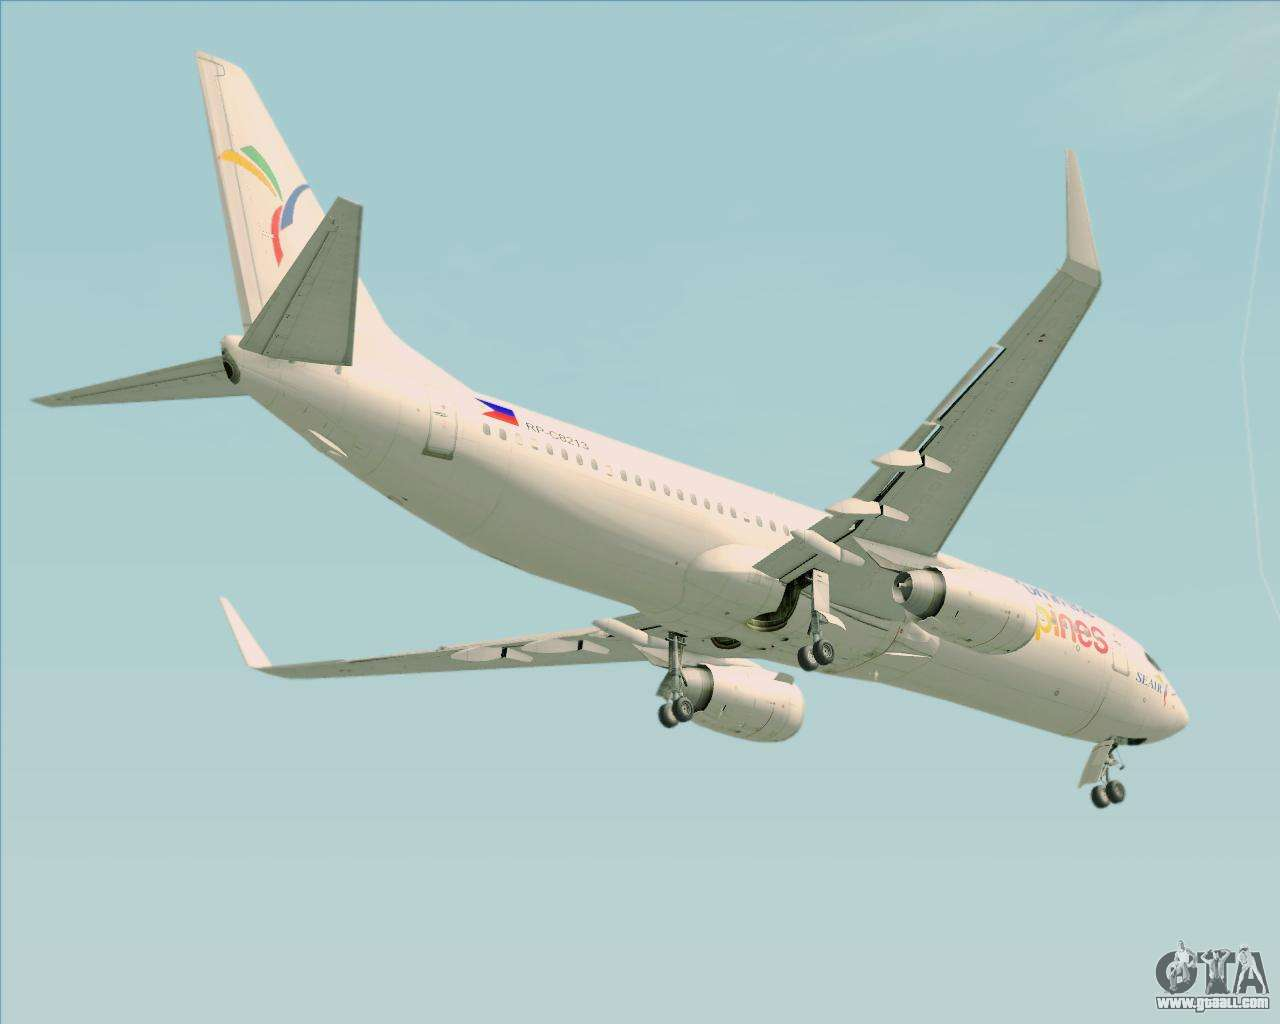 south east asian airline